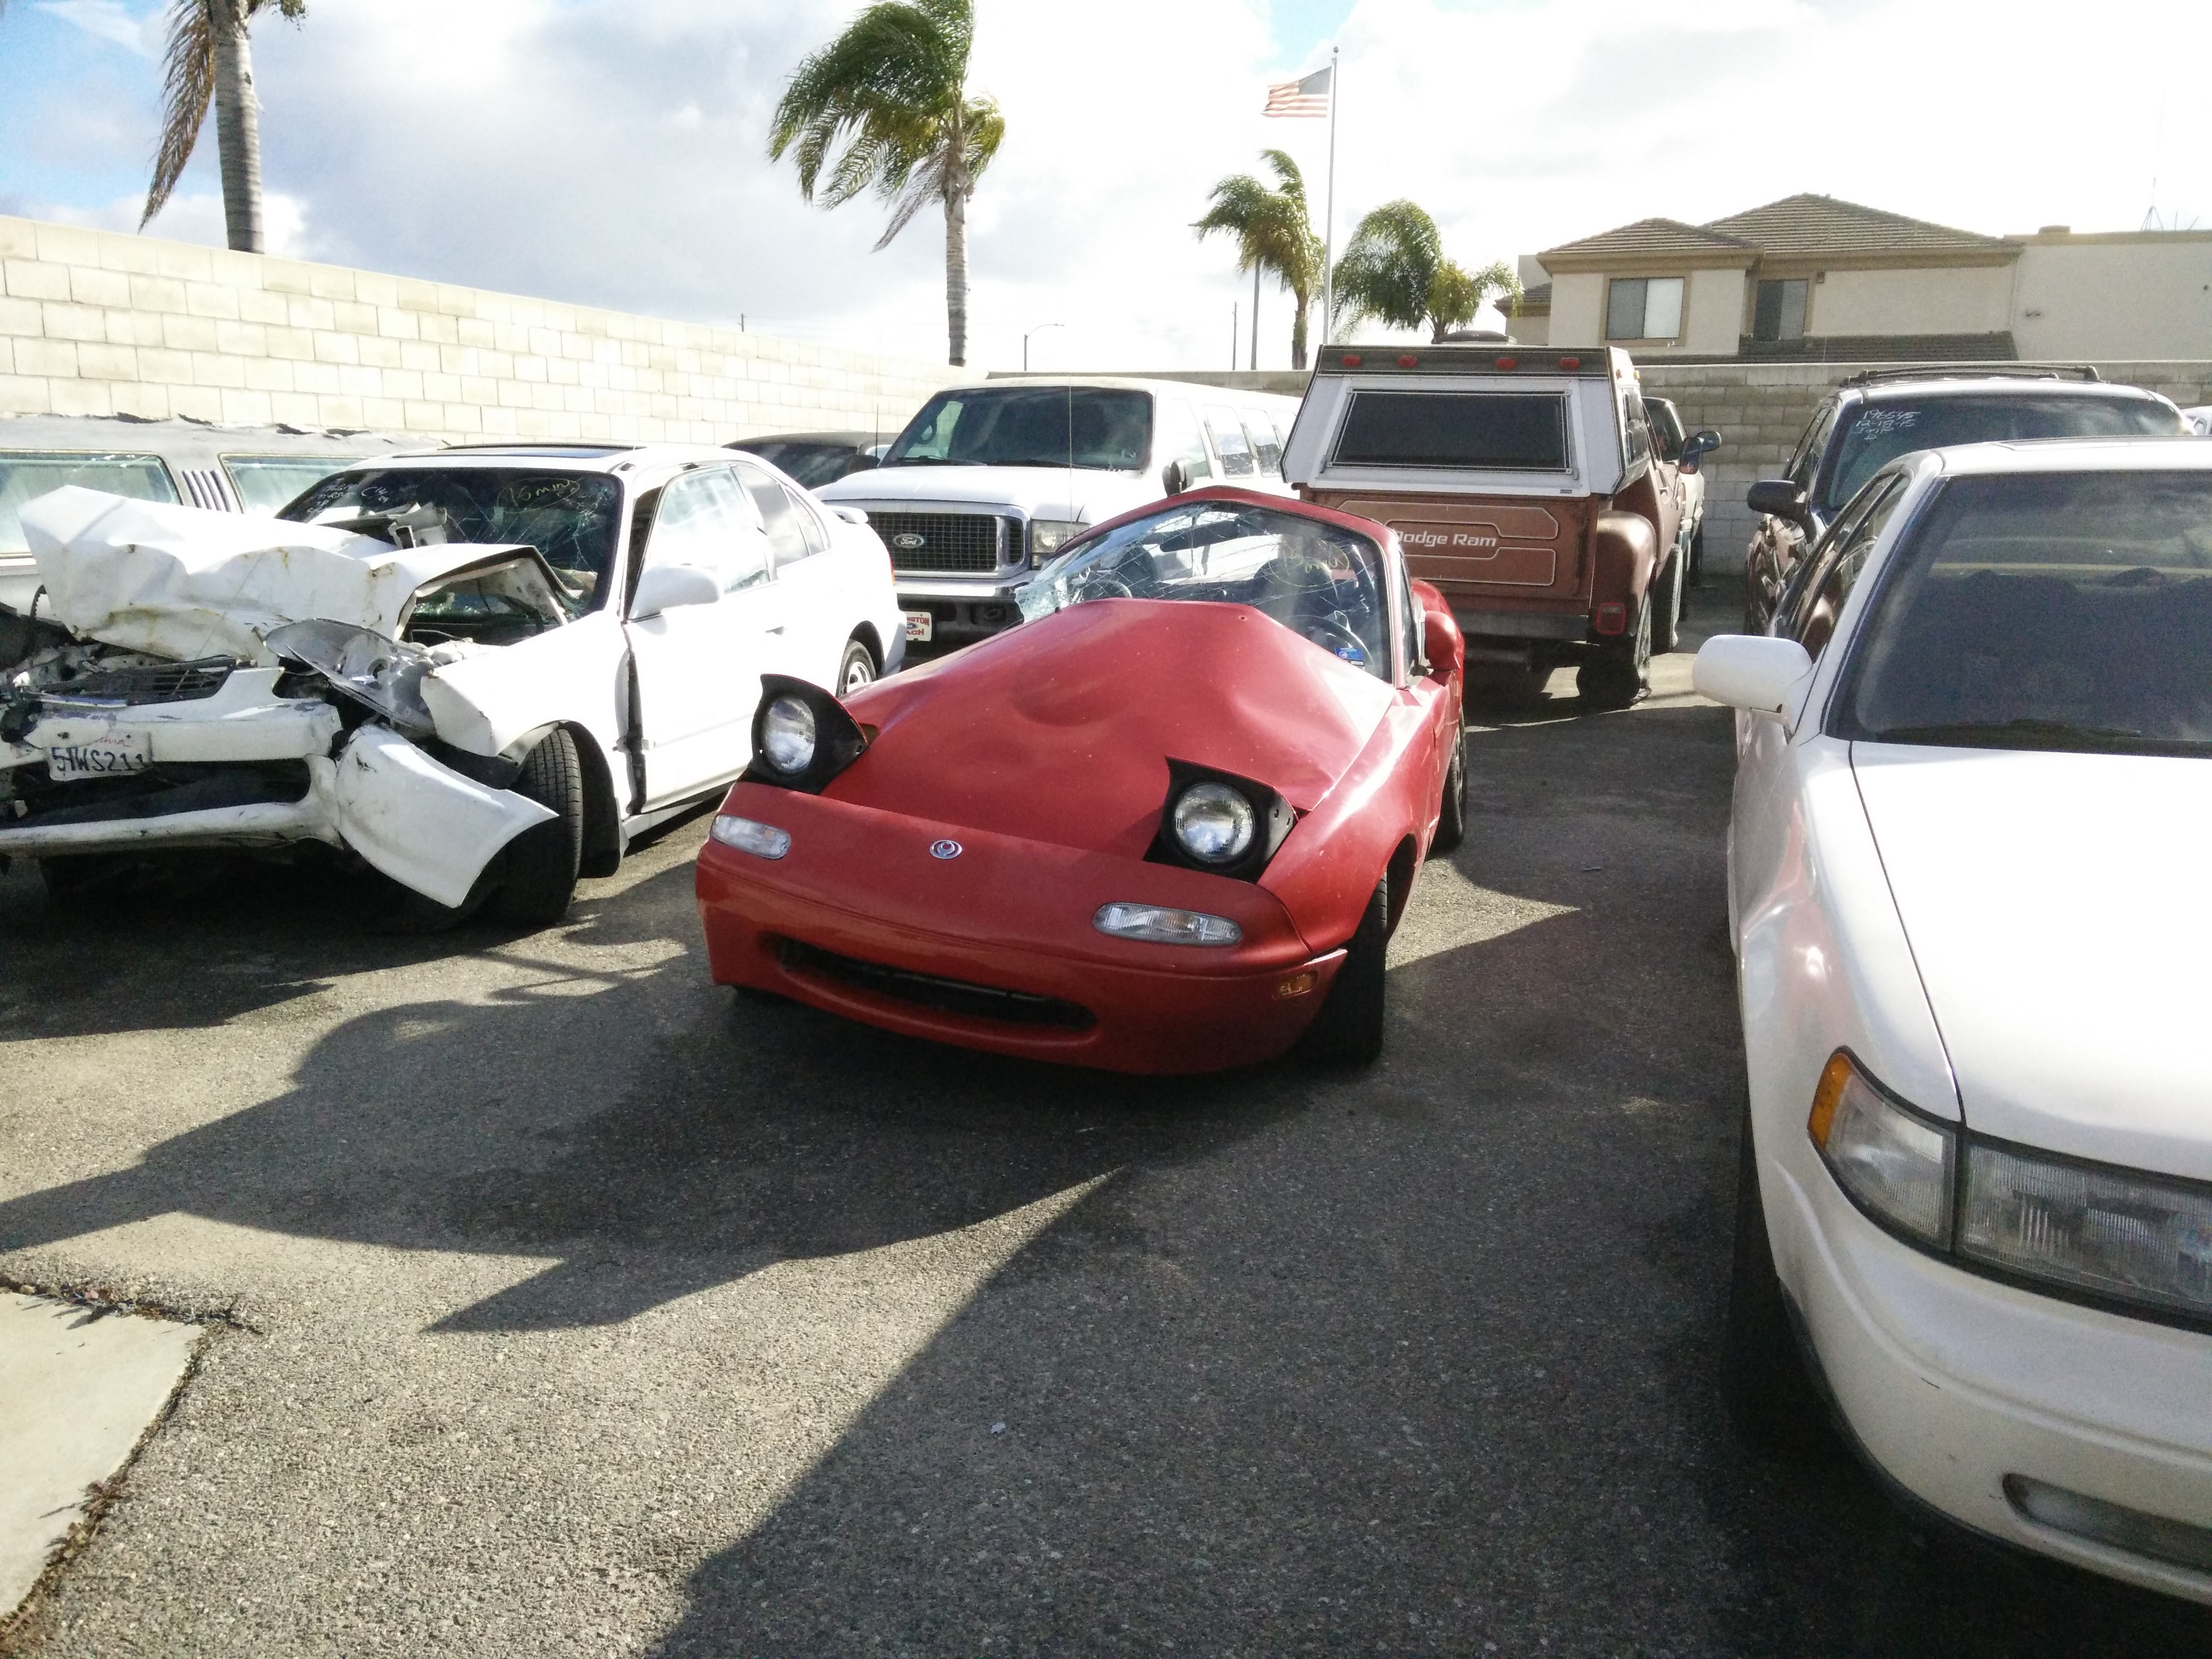 When Is A Car Totaled >> Mazda Miata Saves Owner's Life After Being T-Boned by Jeep Running a Red Light - autoevolution